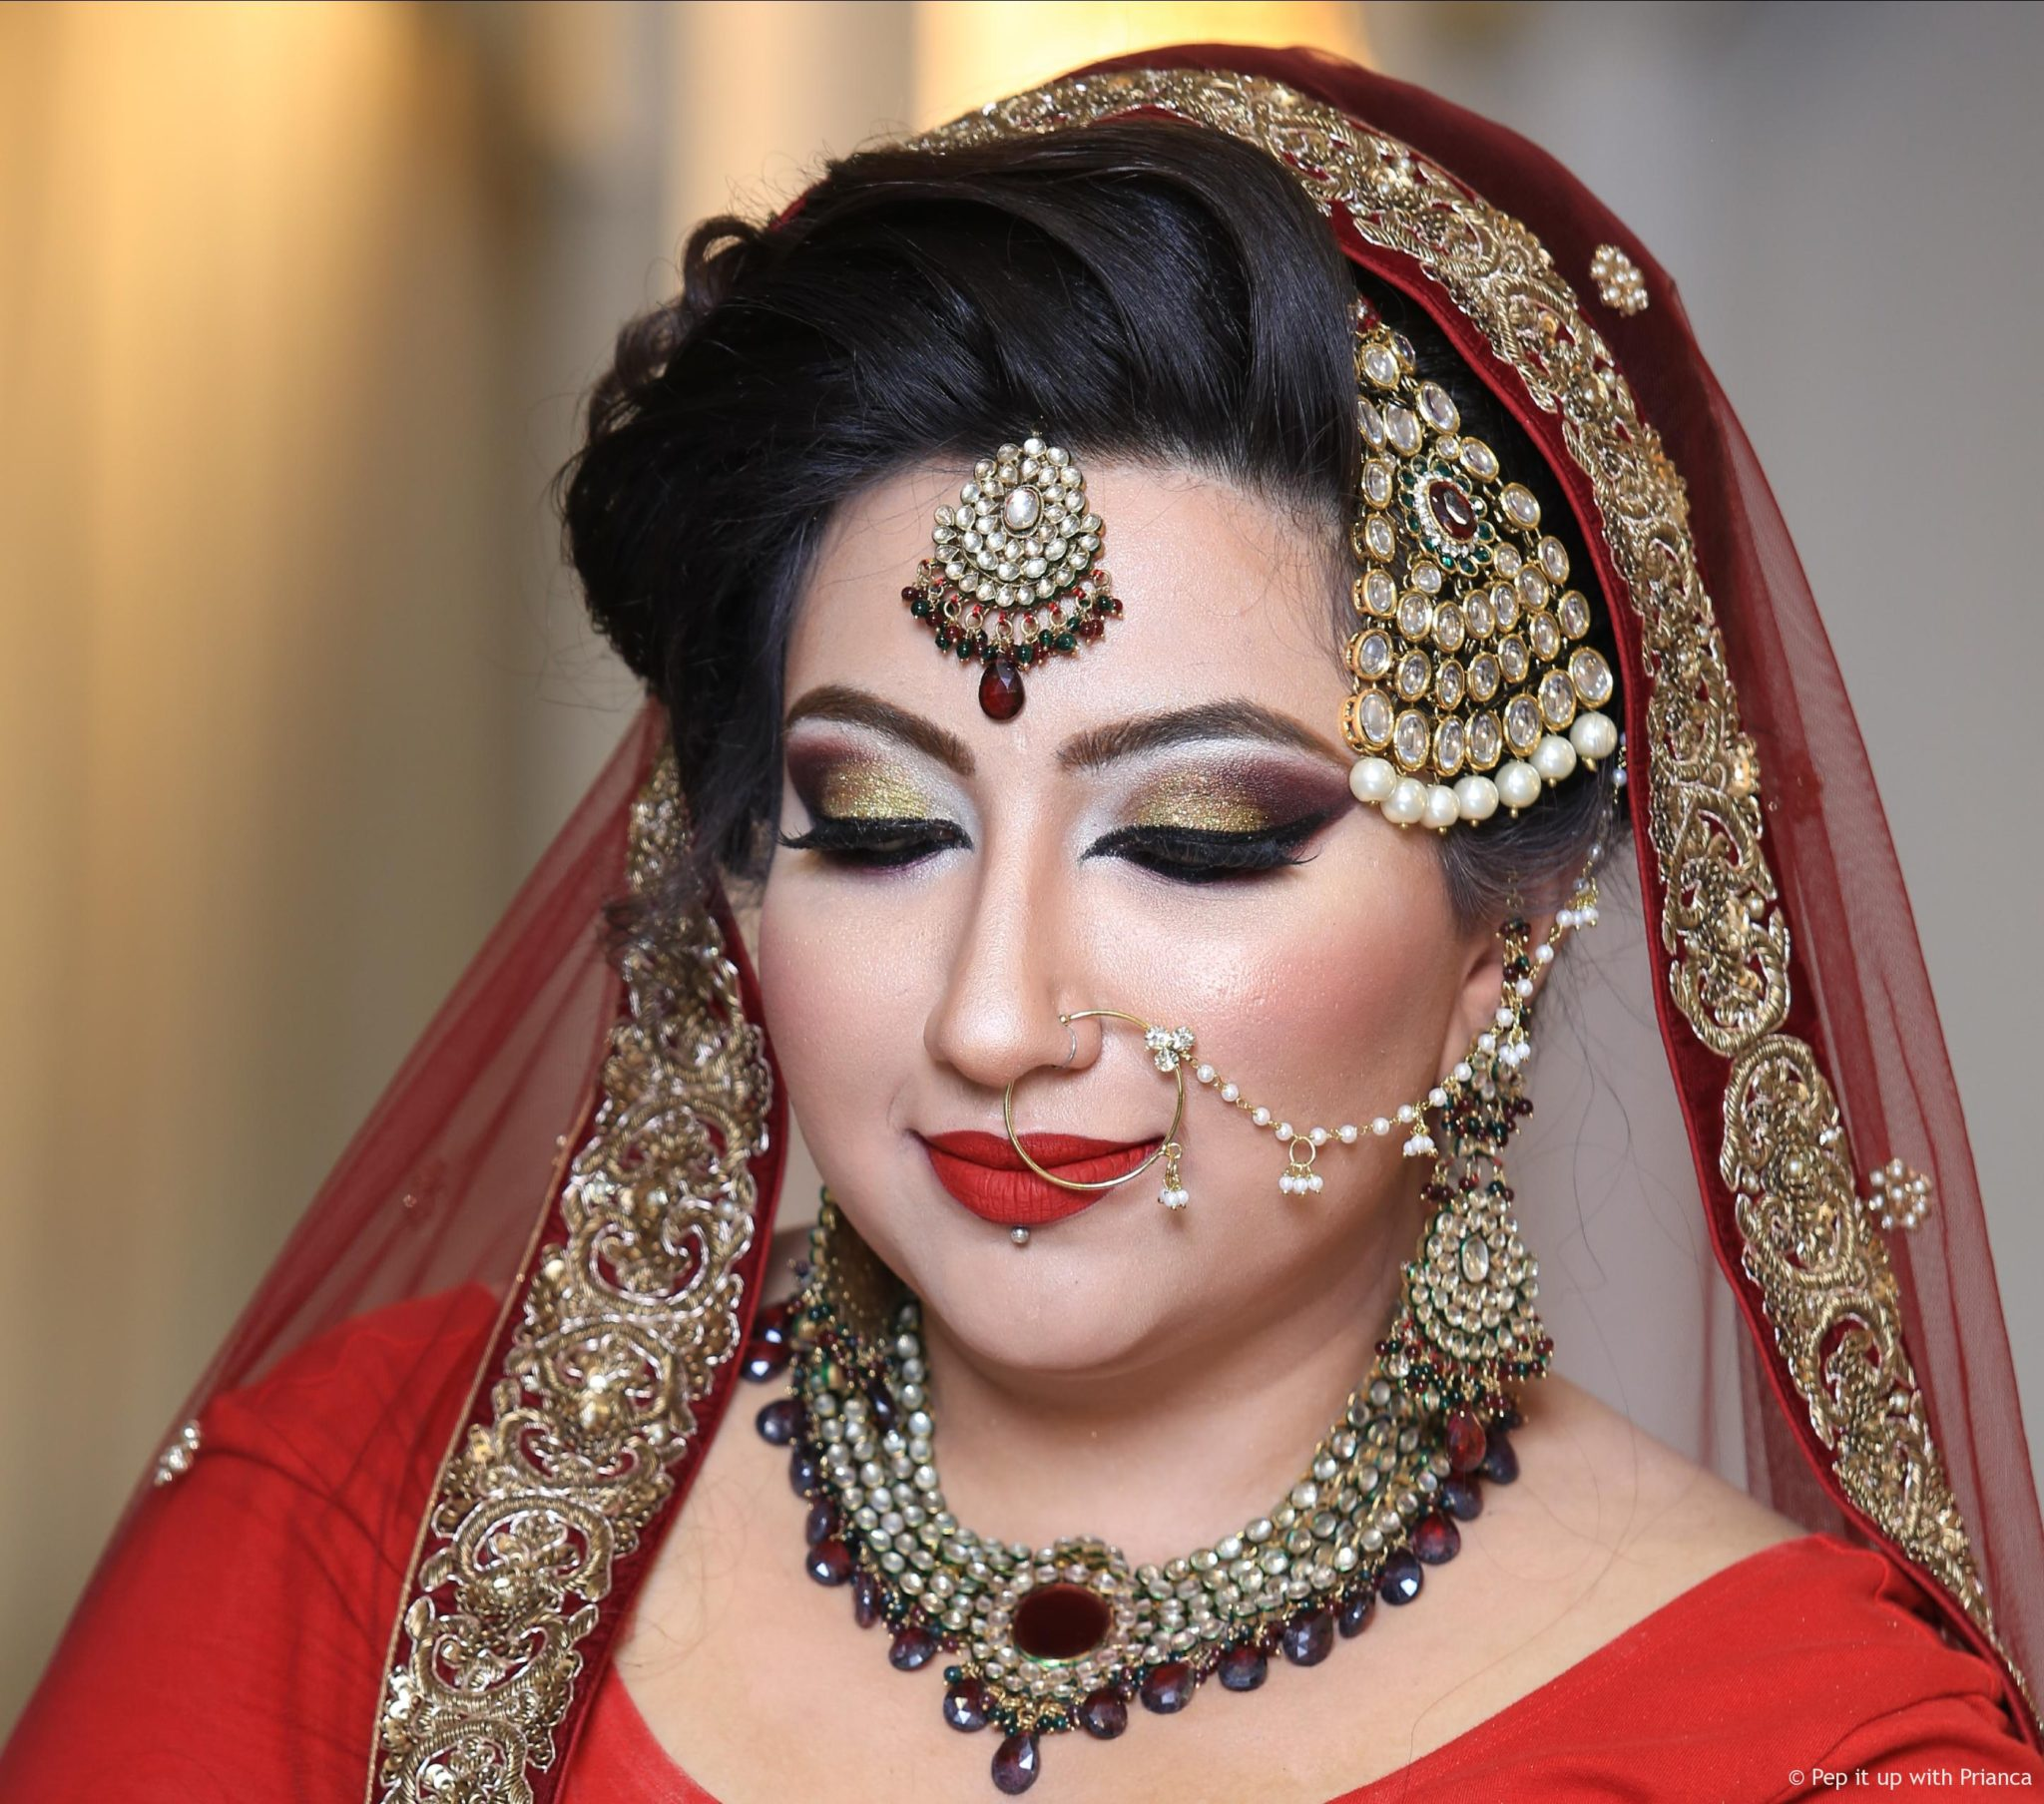 Bridal Makeup by Tarun - Meet Tarun Kapoor : Best Celebrity and Professional Make-up artist in North India